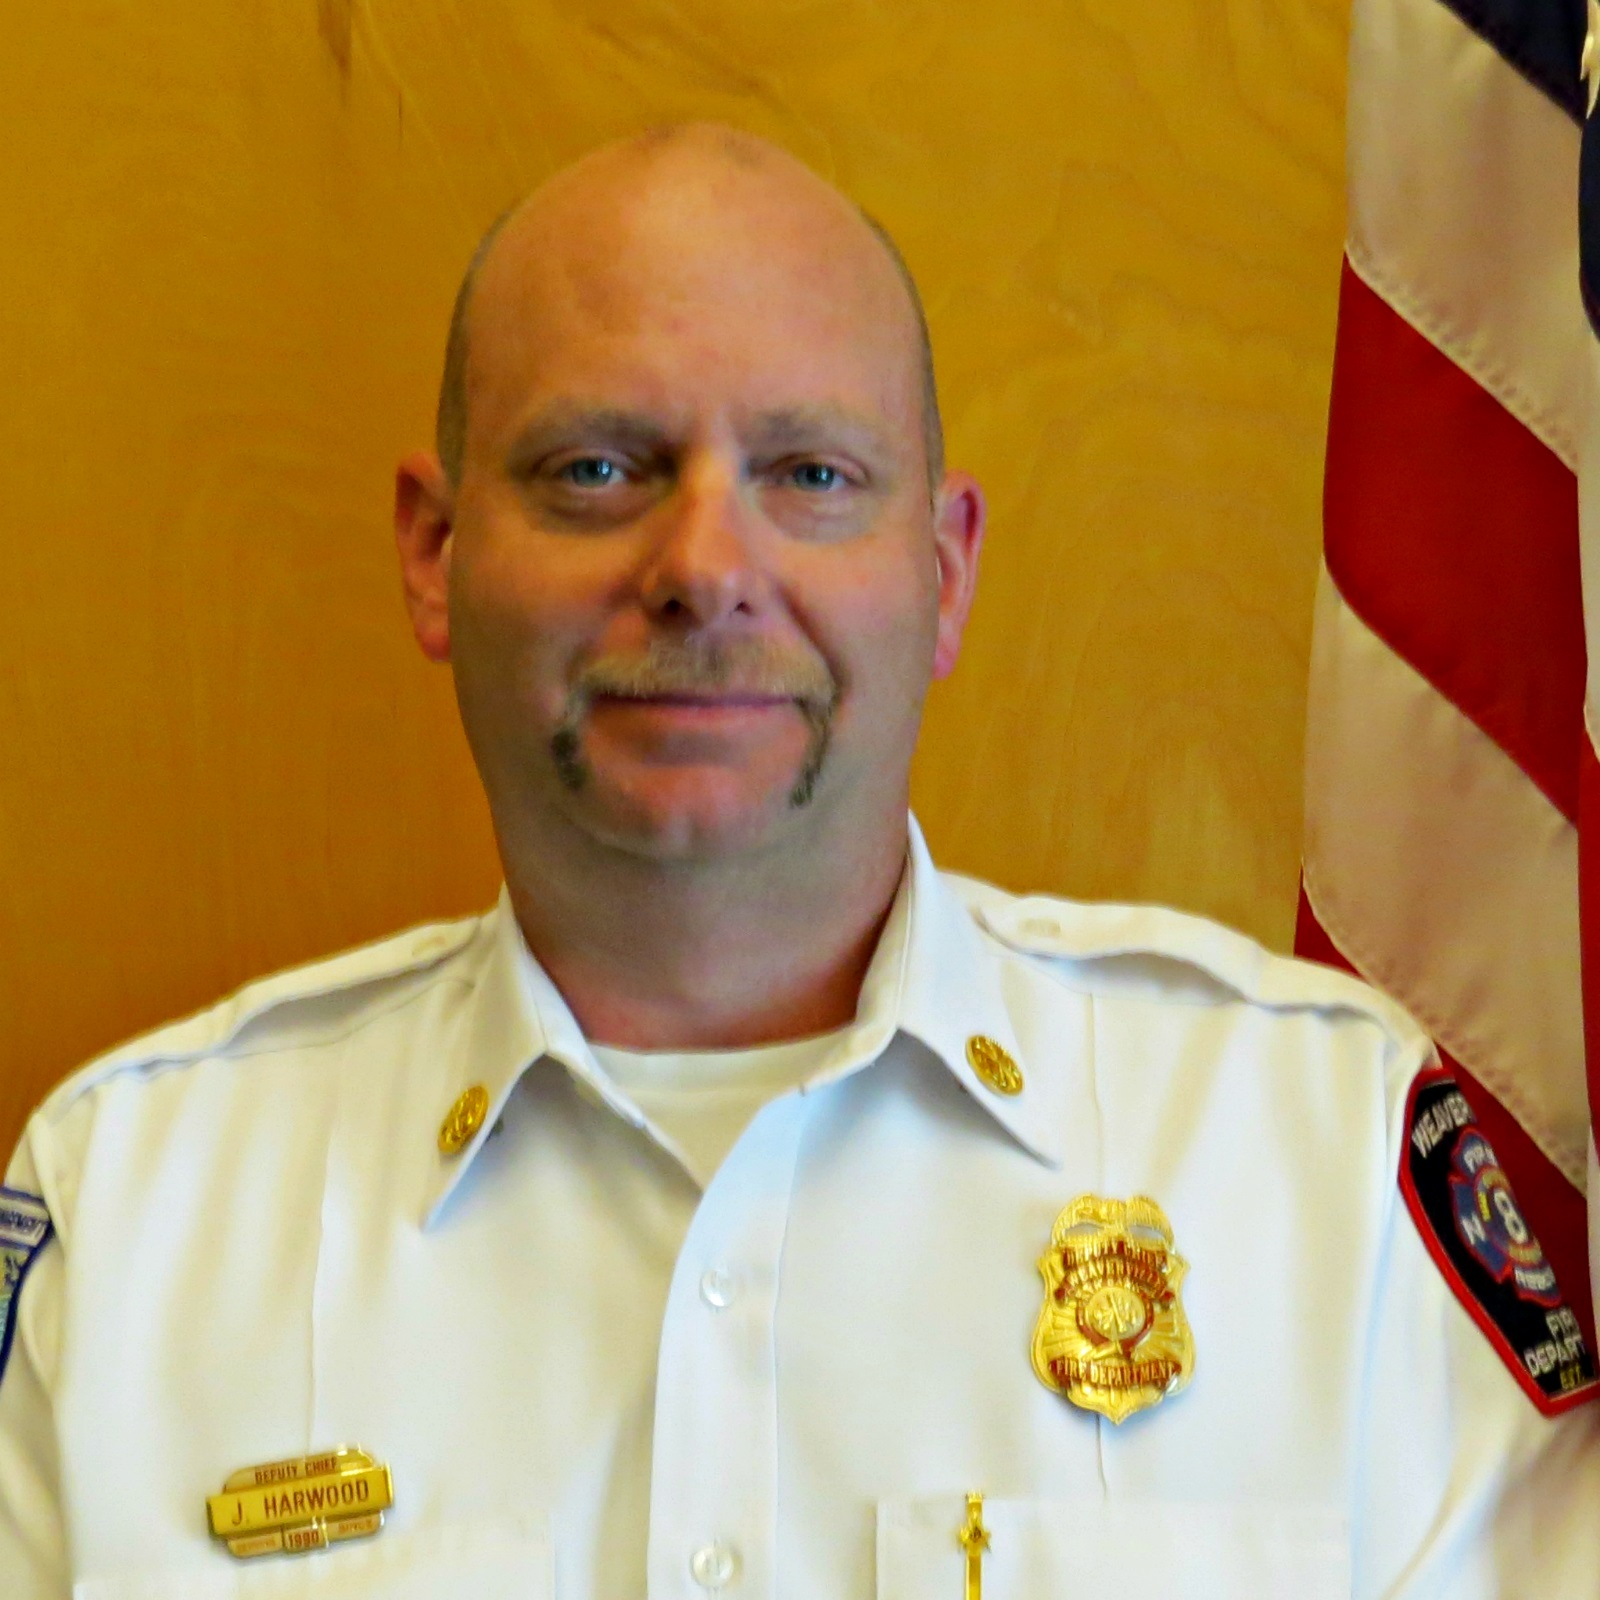 Town Of Weaverville NC Jayson Harwood Deputy Fire Chief